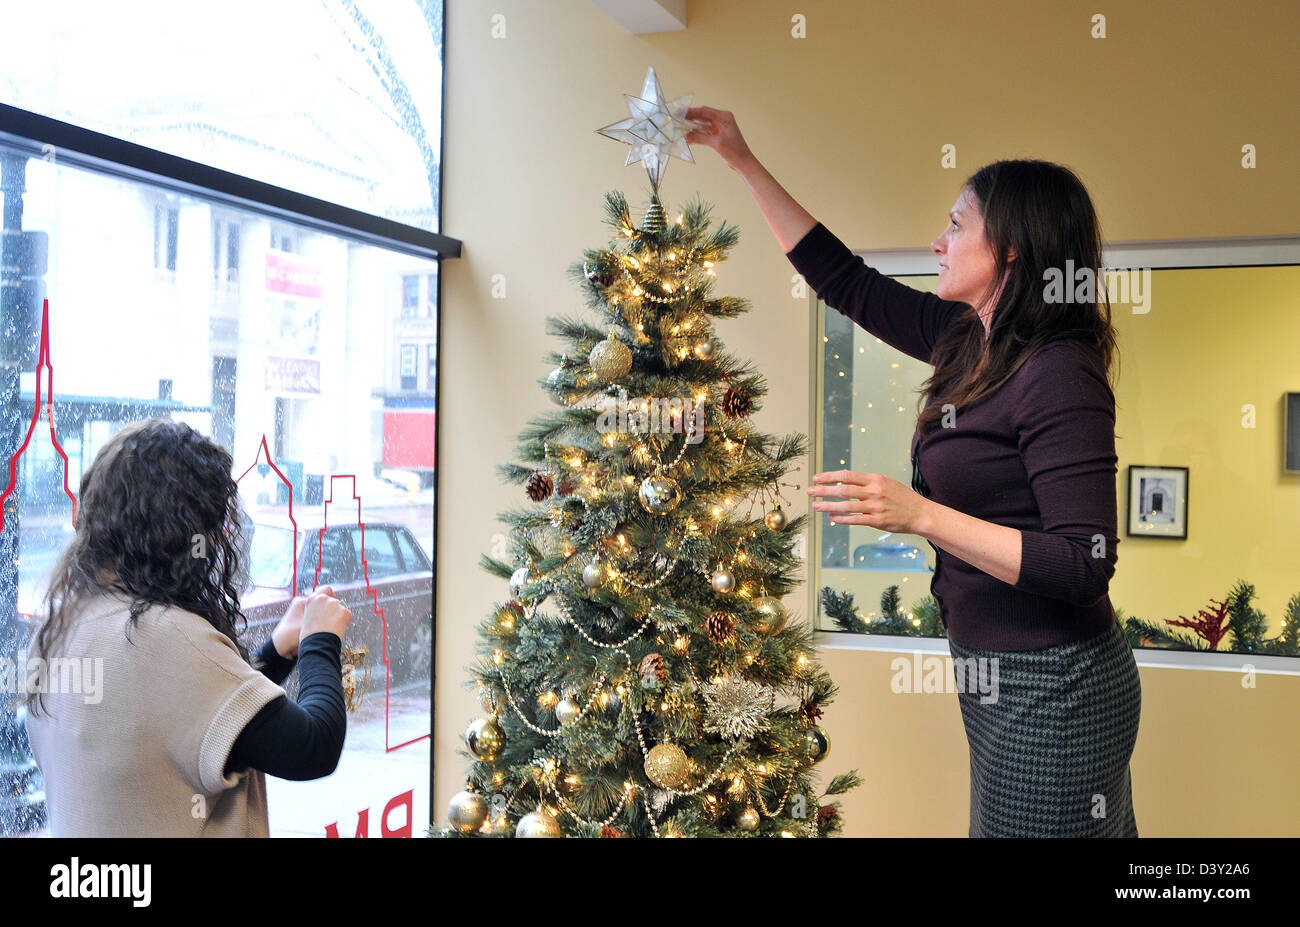 people decorating christmas tree trimming in an office in ct usa